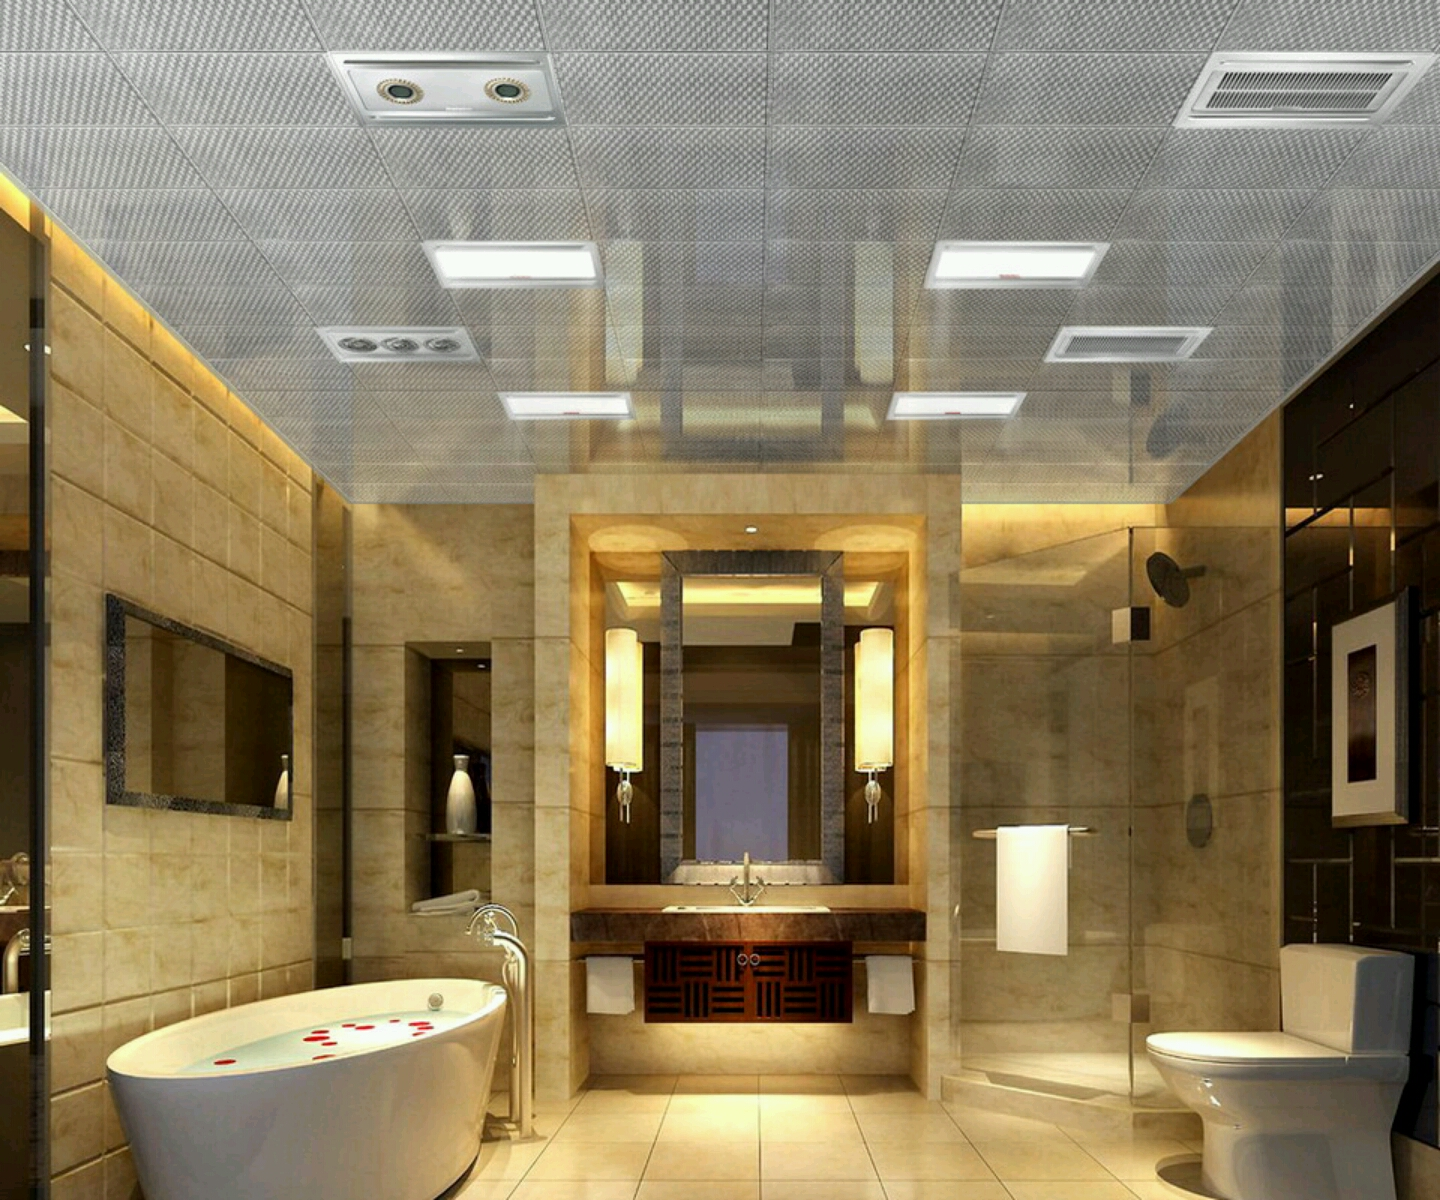 New home designs latest luxury bathrooms designs ideas for Bathroom designs for home